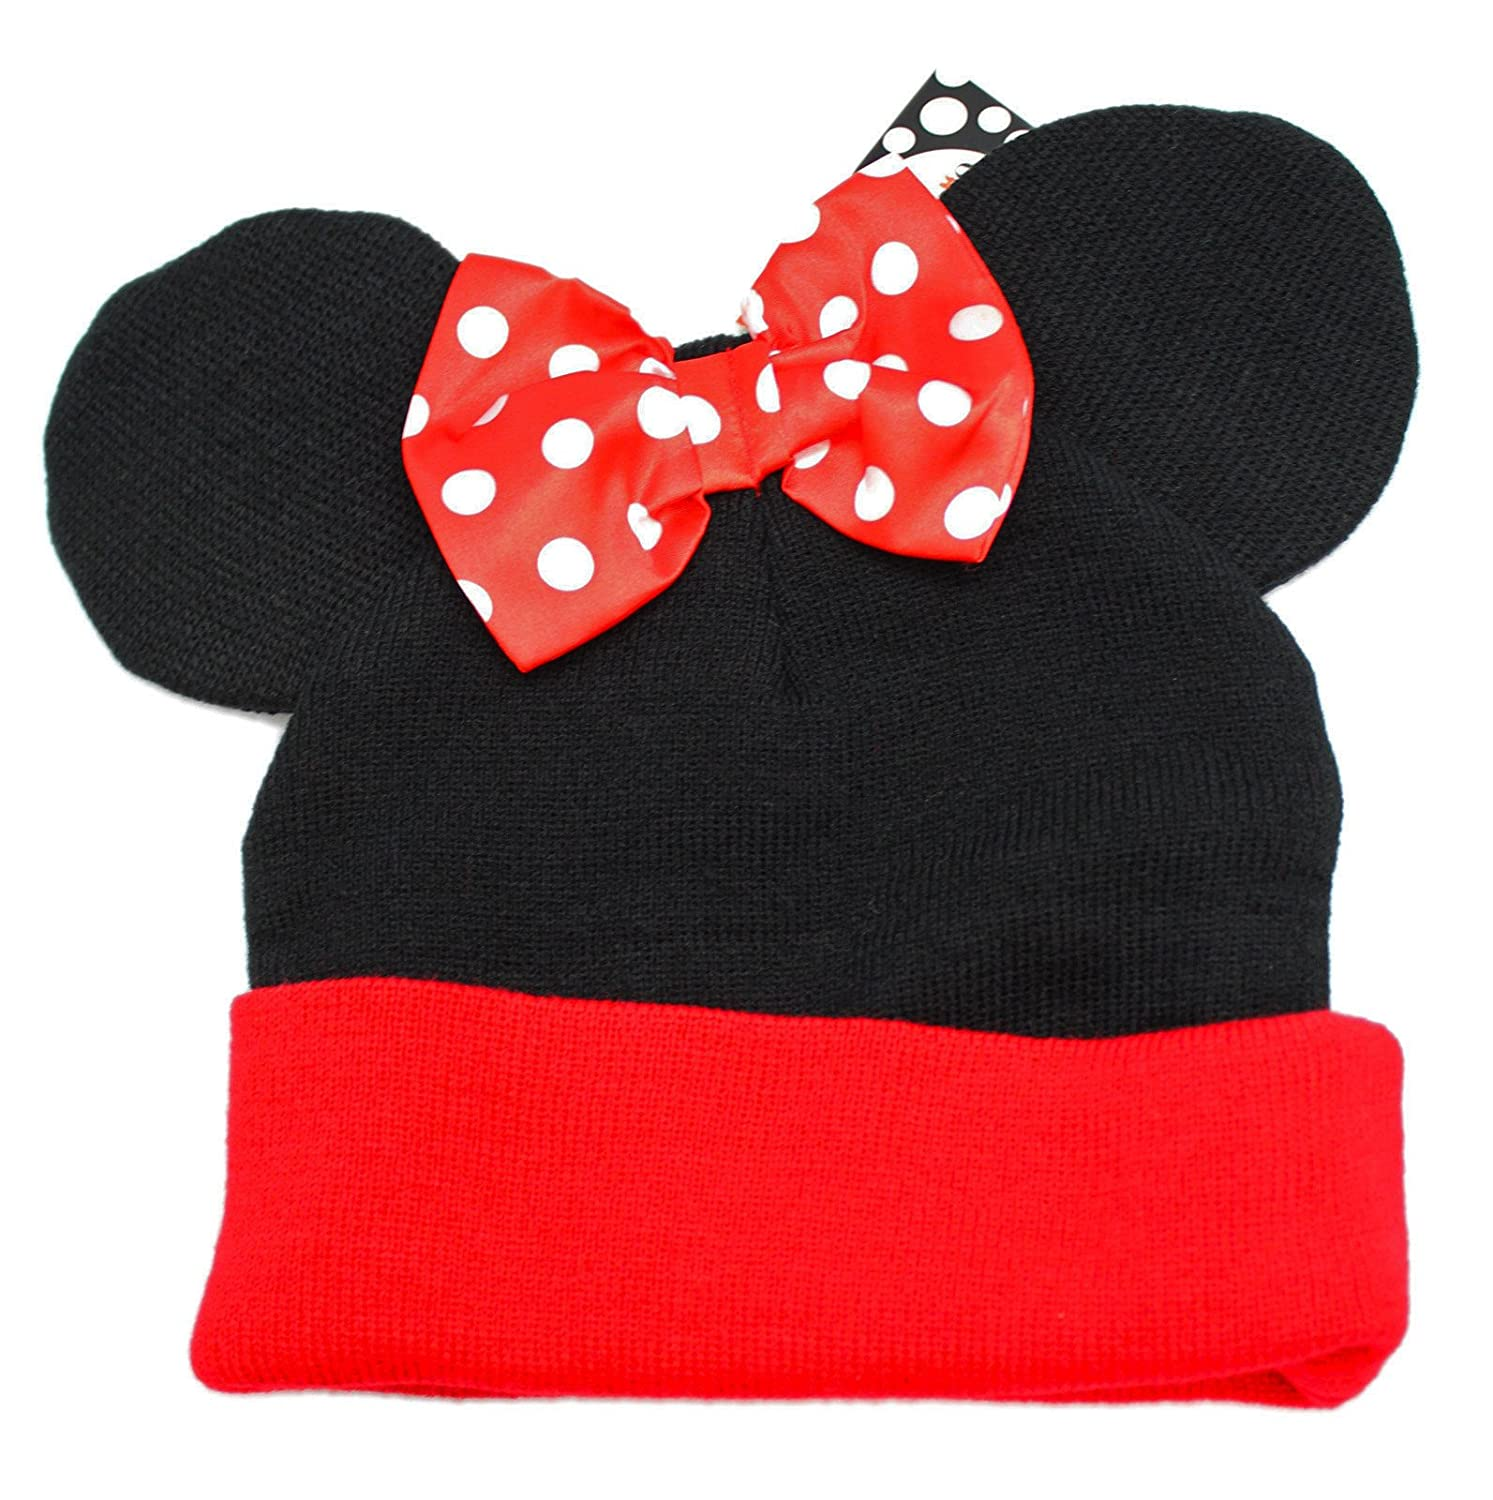 Amazon.com: Disney Cuffed Beanie - Minnie Mouse with Bow: Clothing